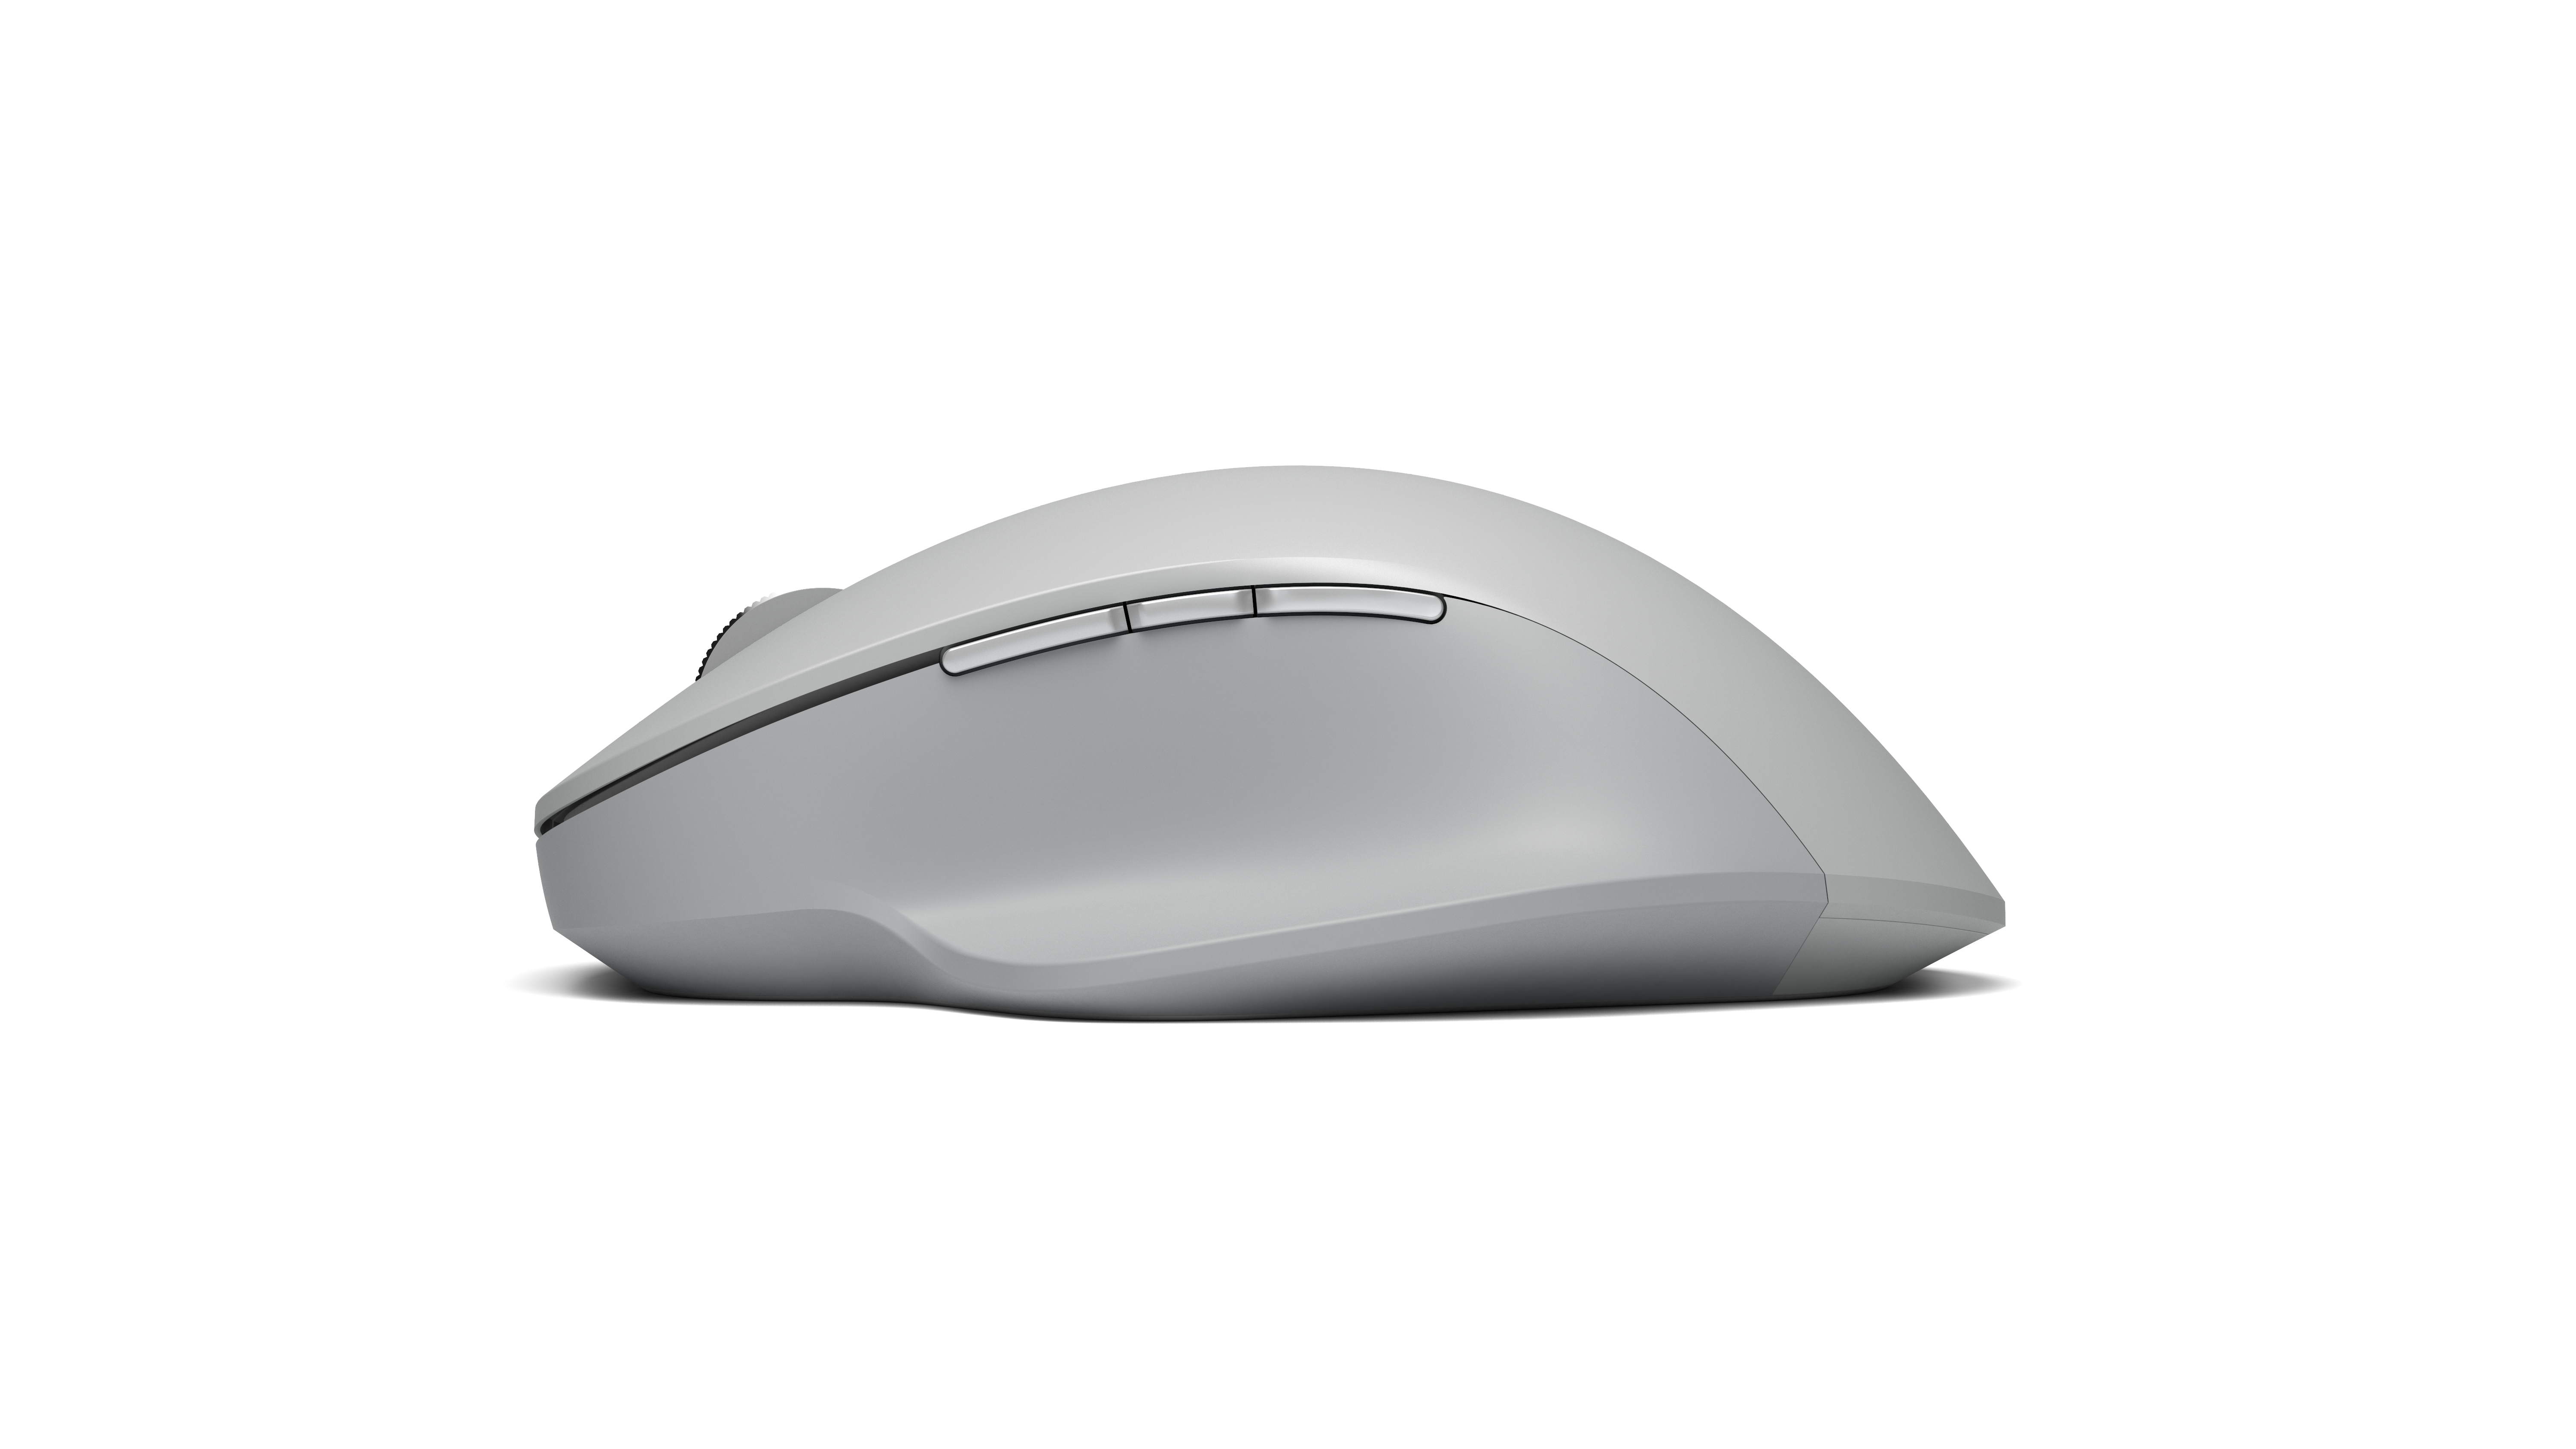 Microsoft announces new Surface Precision Mouse